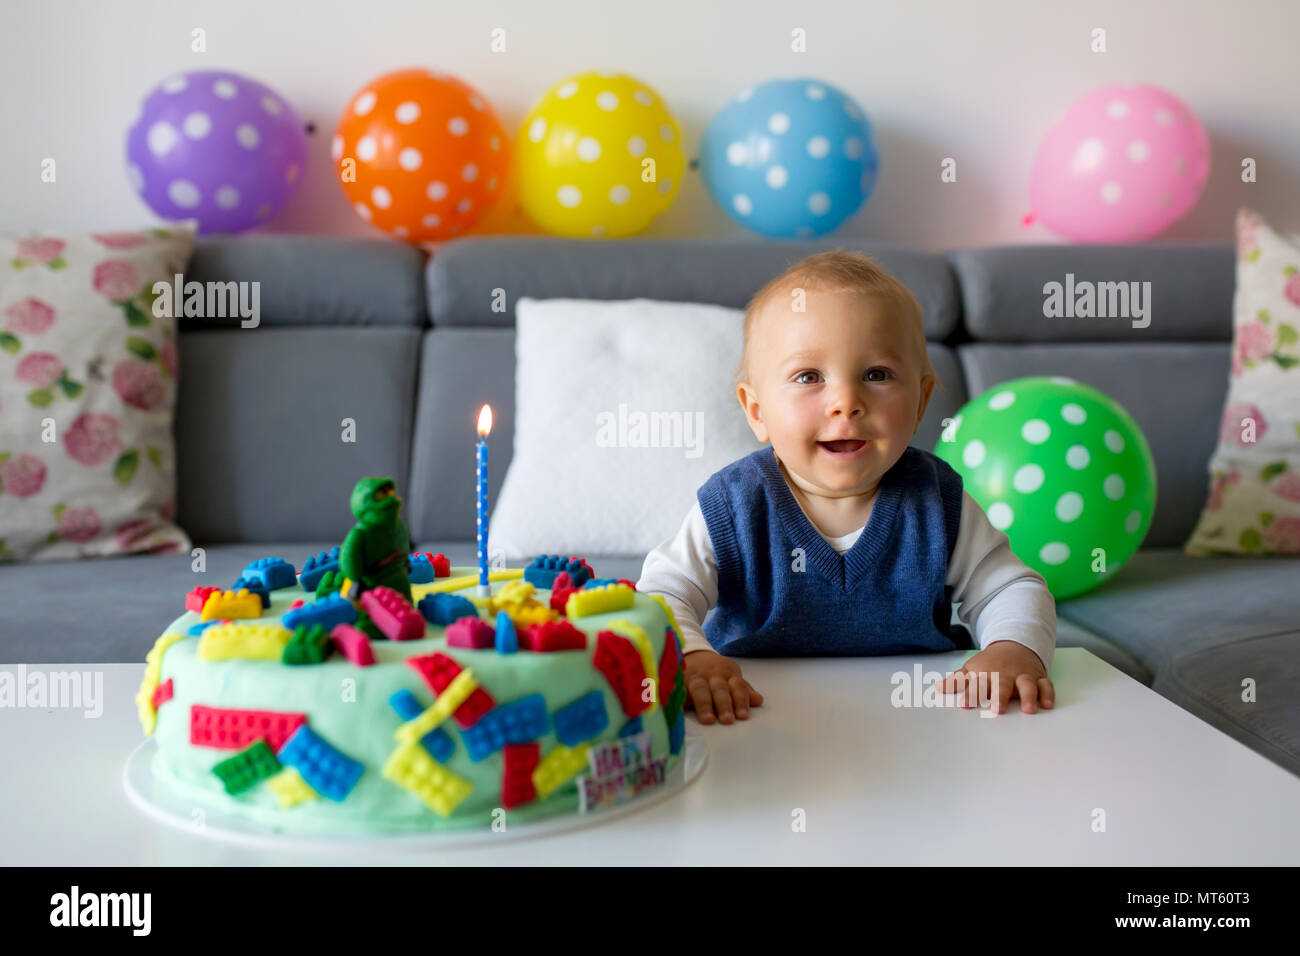 Cute Child Baby Boy Celebrating His First Birthday With Colorful Cake Candles Balloons At Home